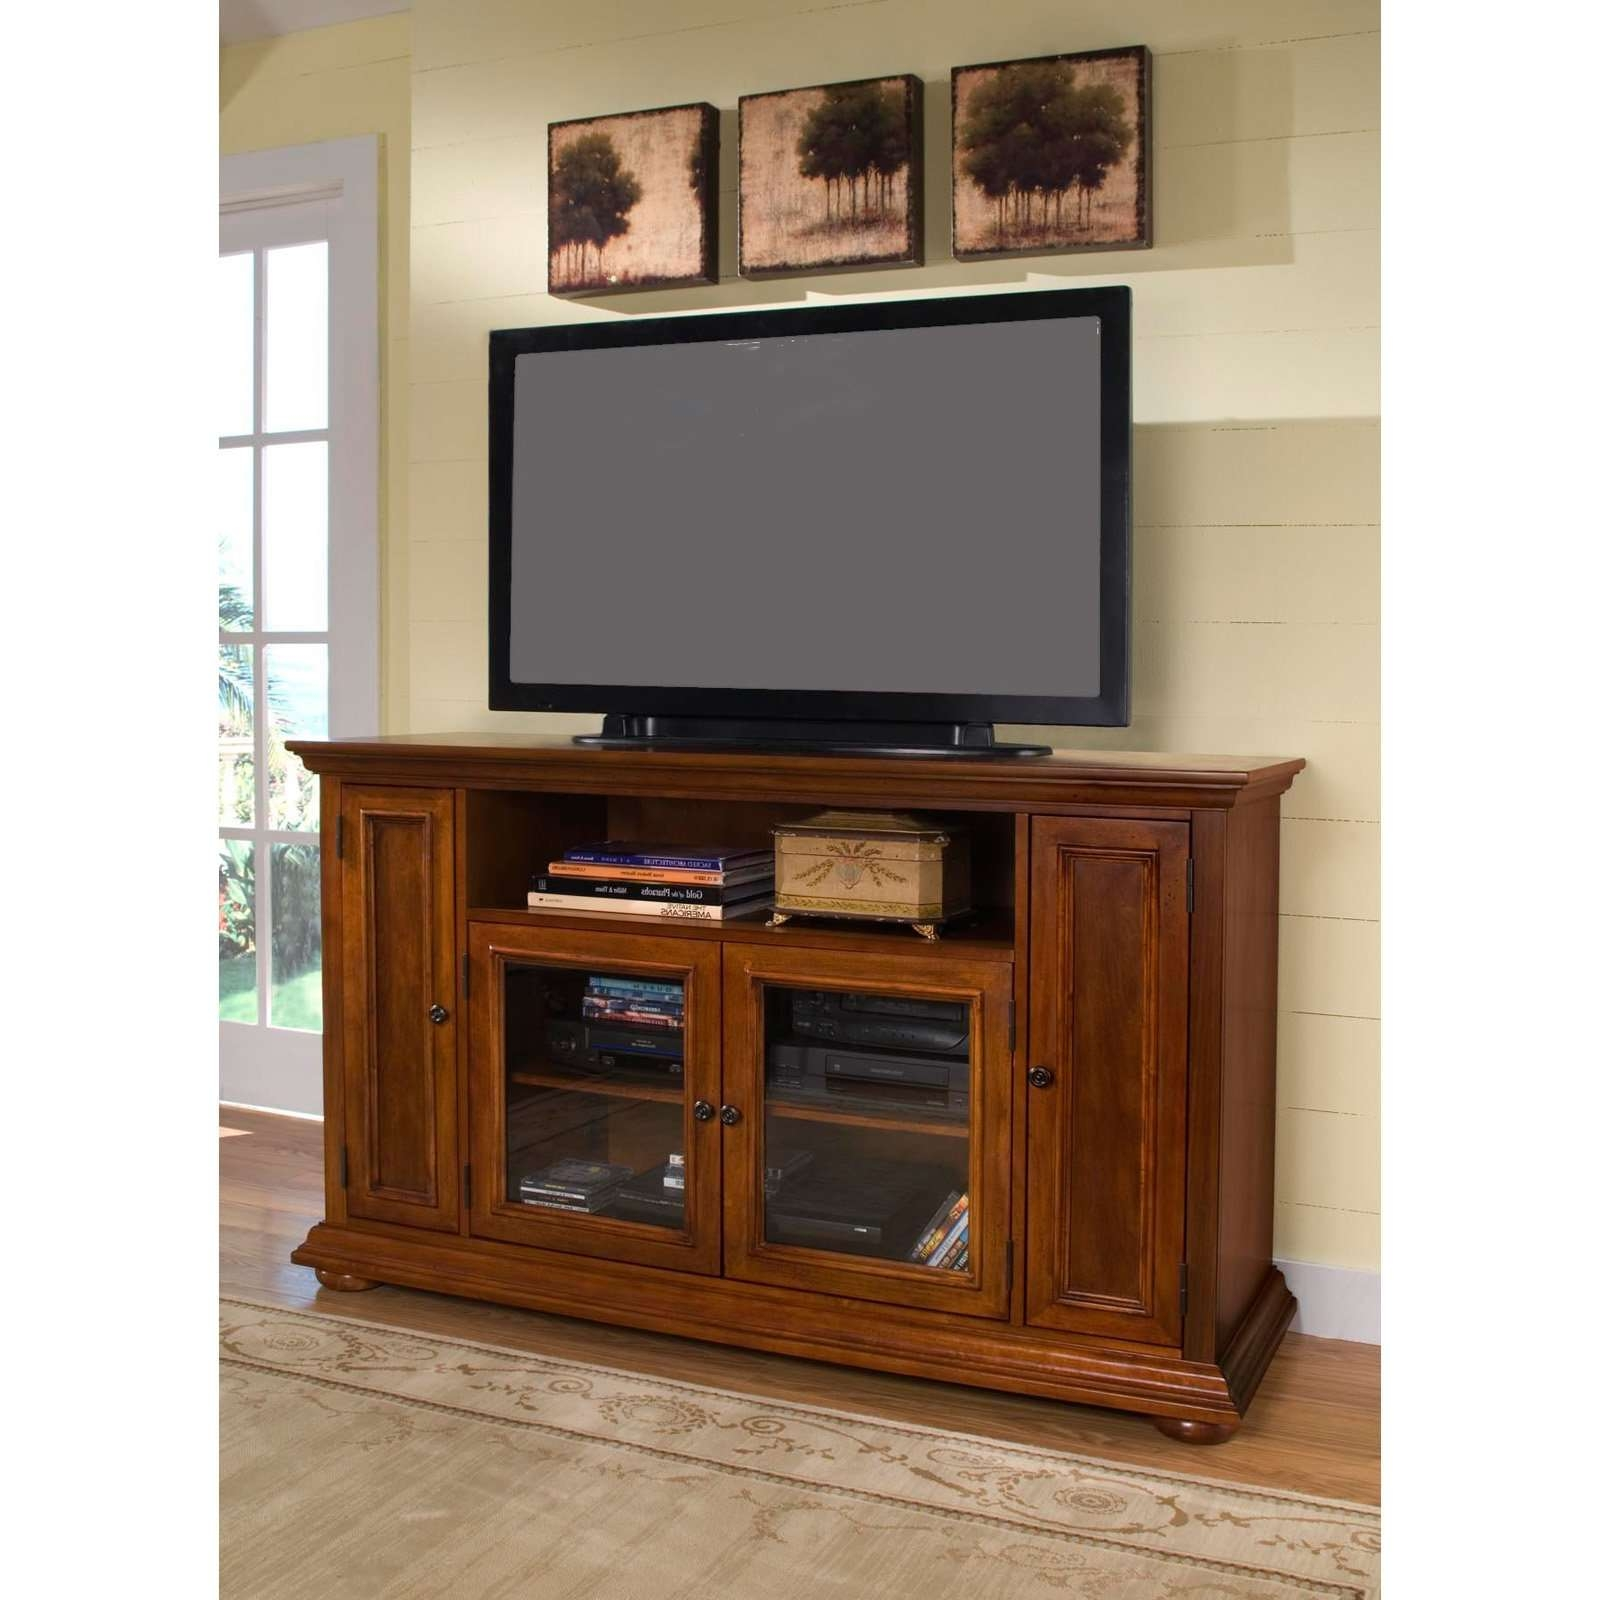 Rectangle Black Flat Screen Tv Over Brown Wooden Cabinet With For Wooden Tv Stands With Glass Doors (View 8 of 15)